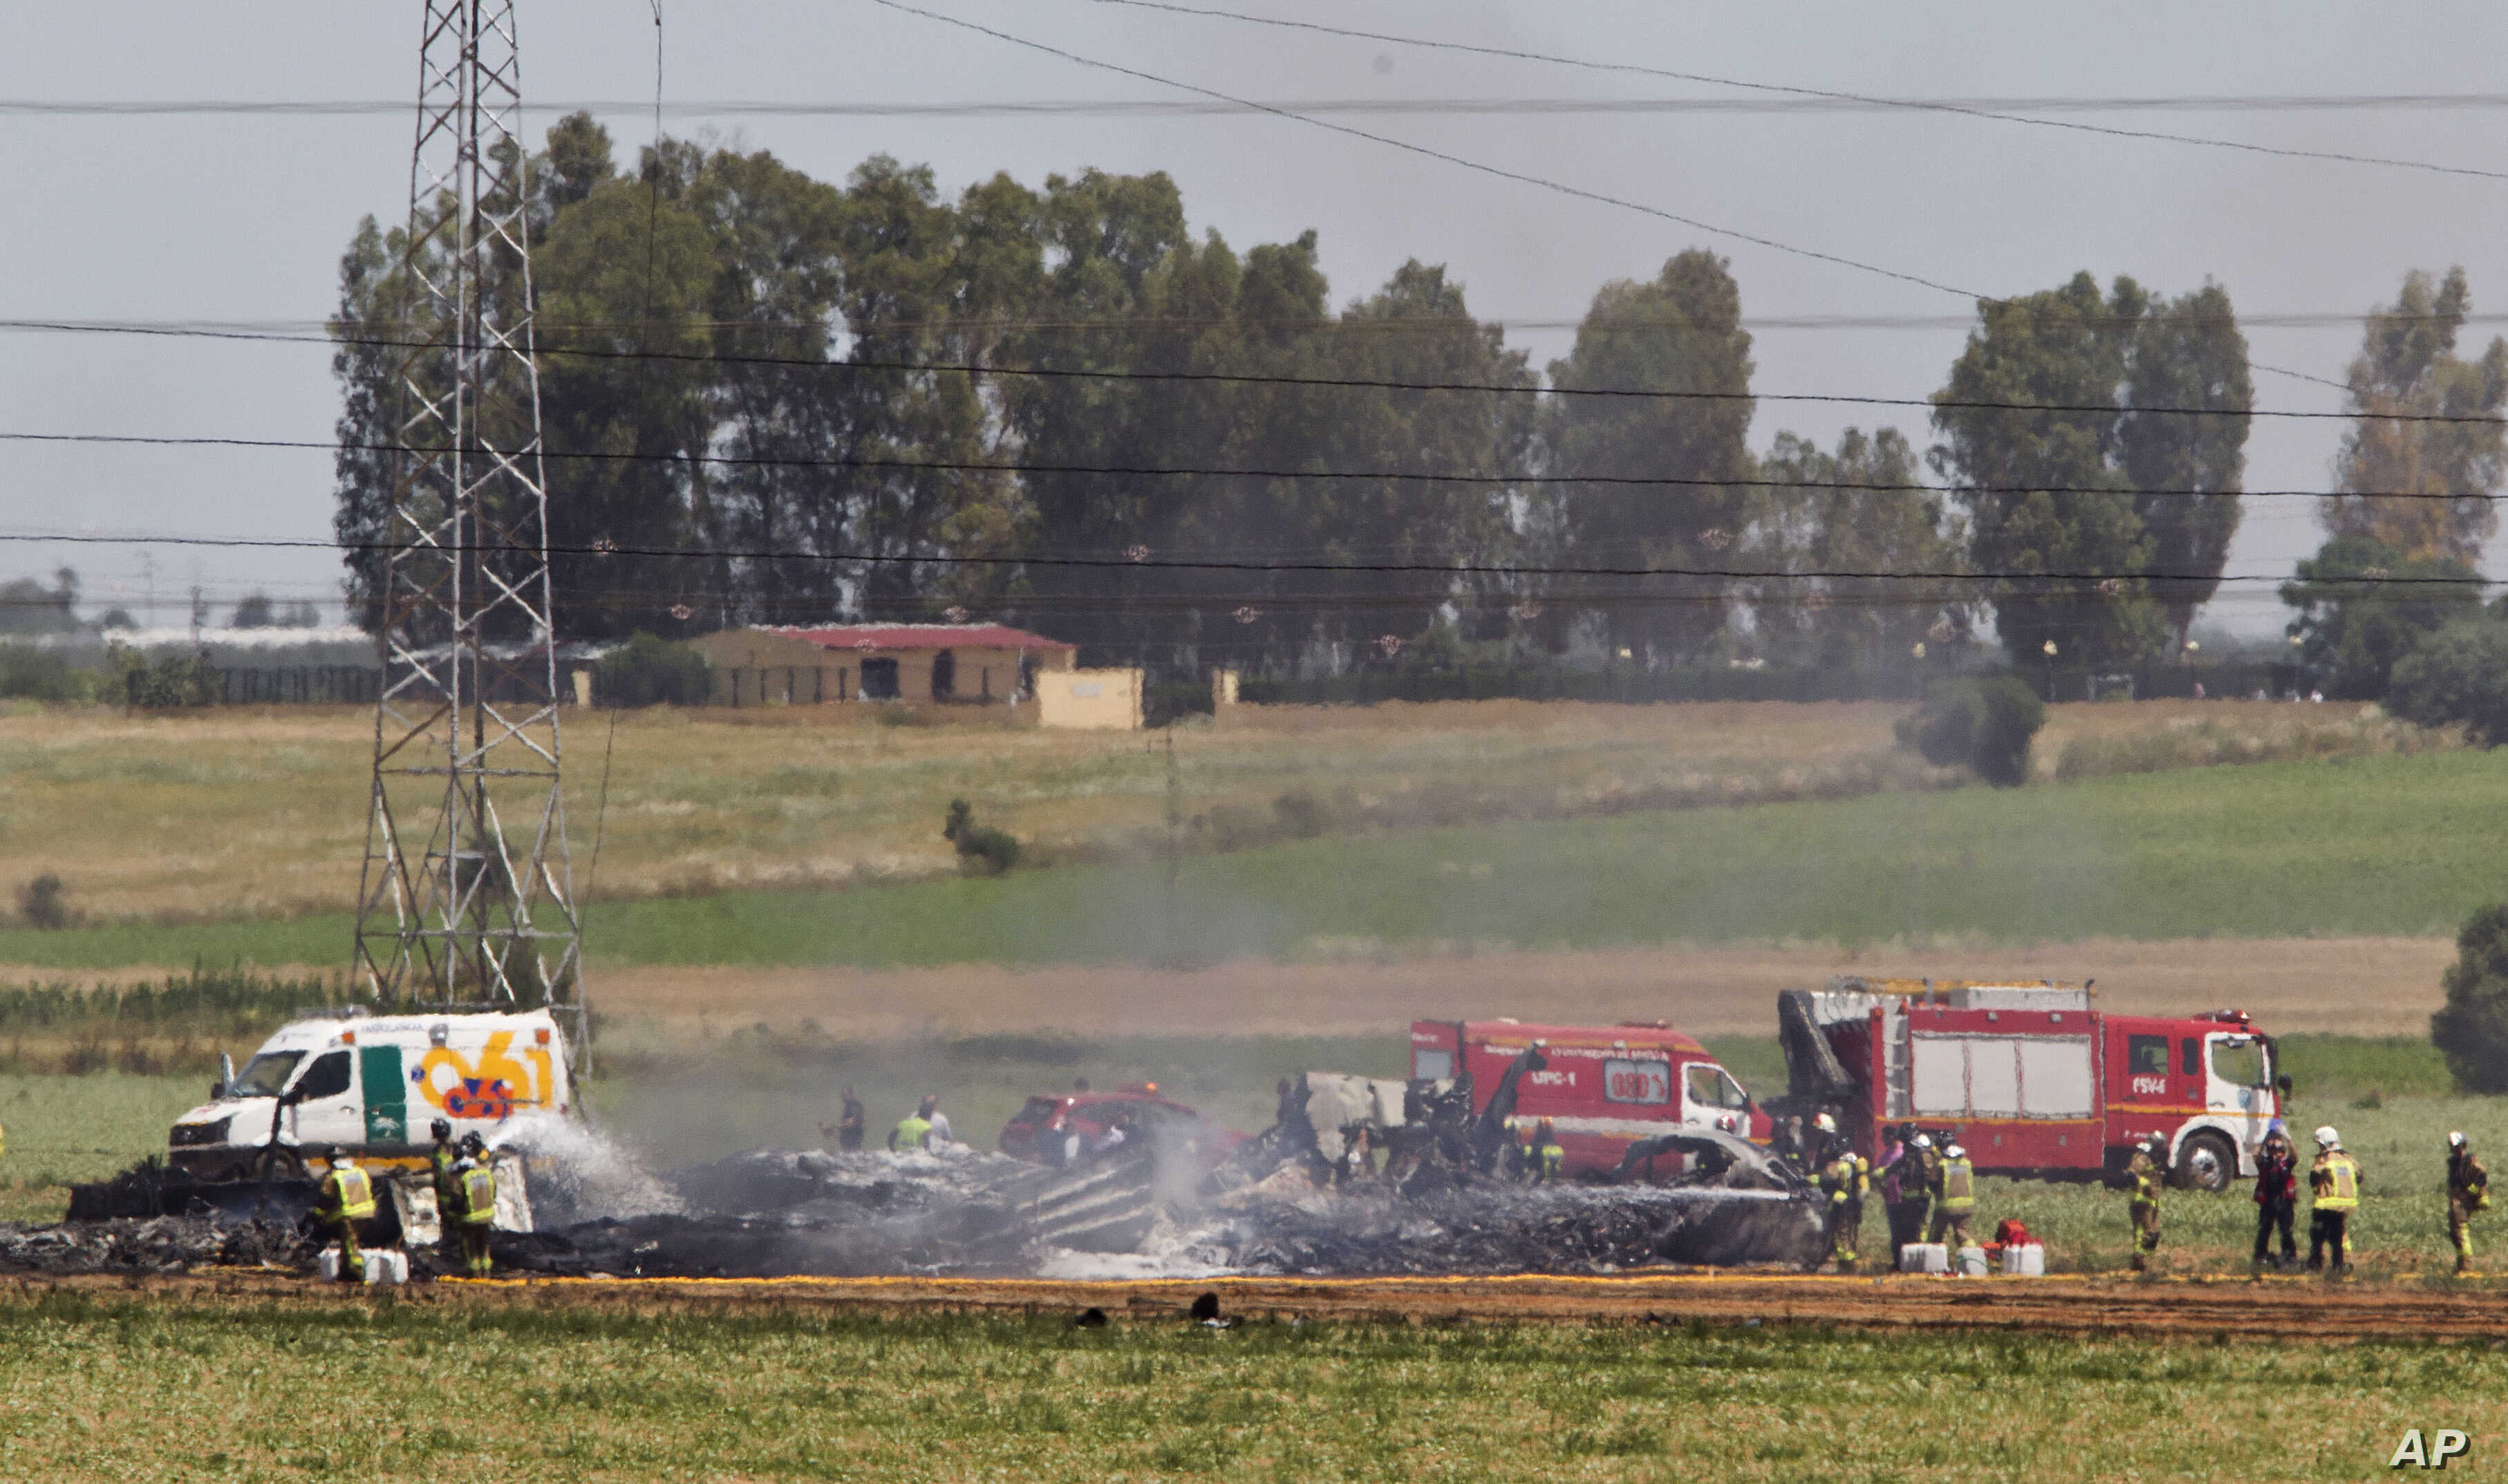 Emergency services personnel work in the area after a plane crash near the Seville airport, in Spain, May 9, 2015.